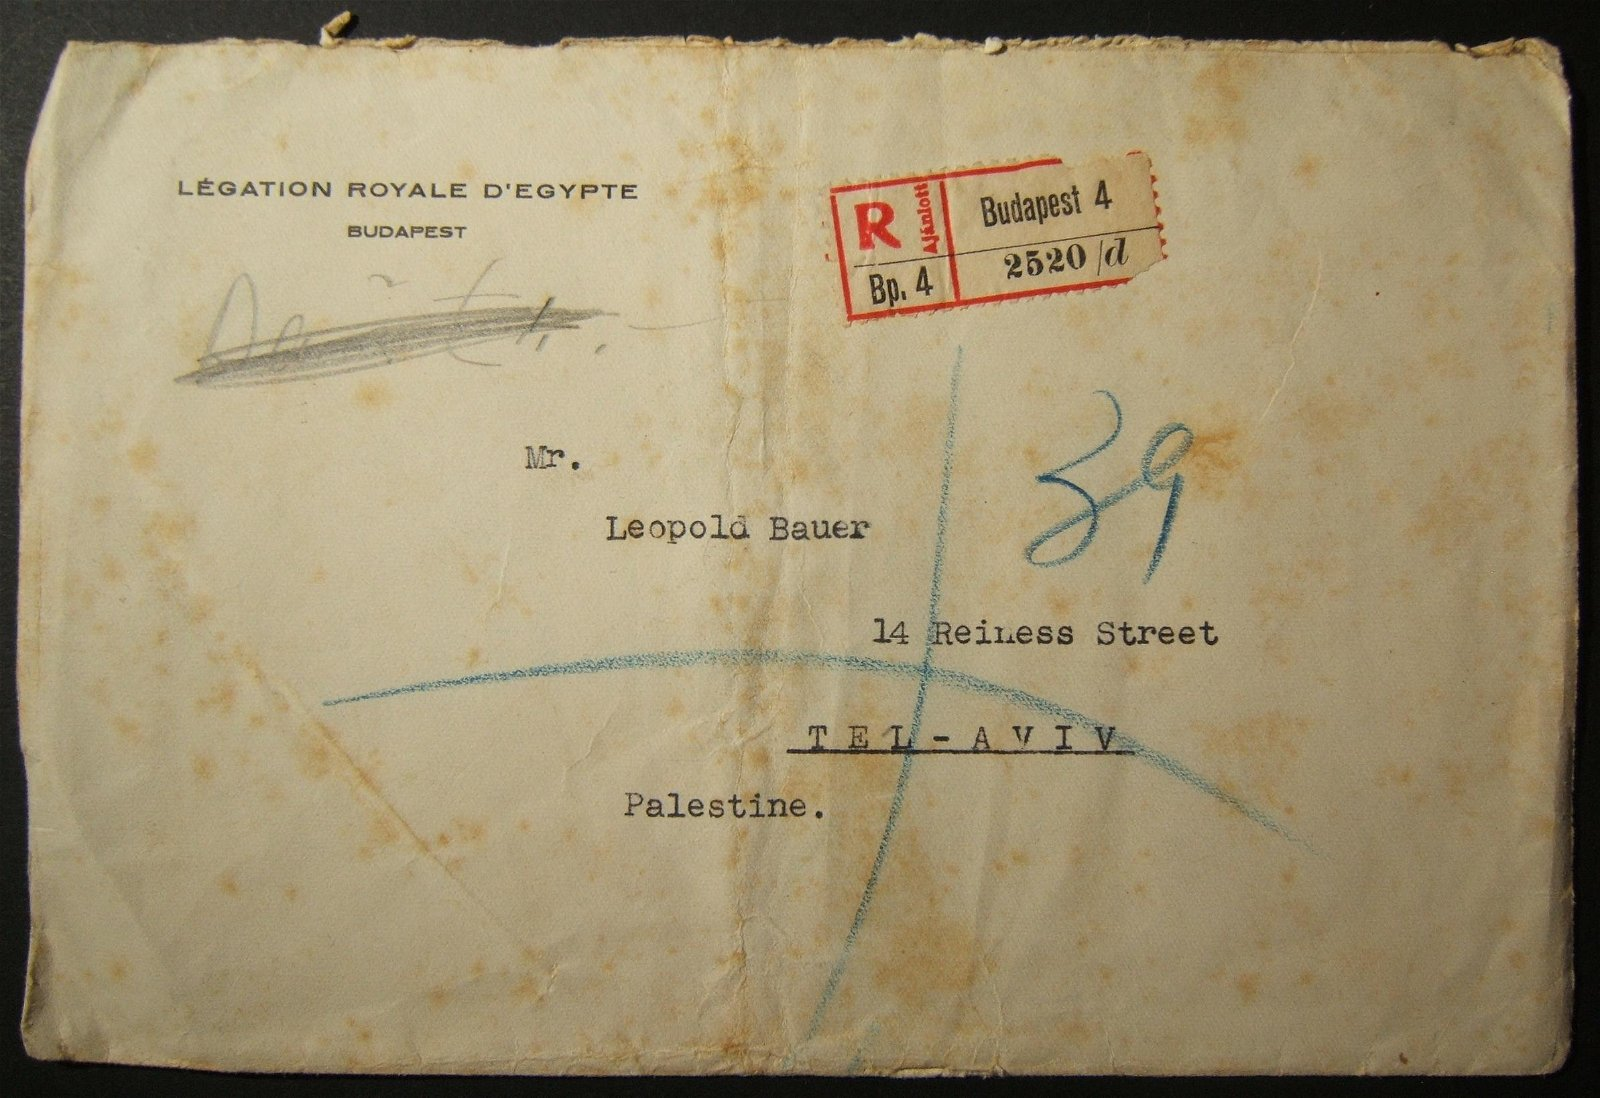 8/1939 Jewish refugee mail ex Egyptian Legation